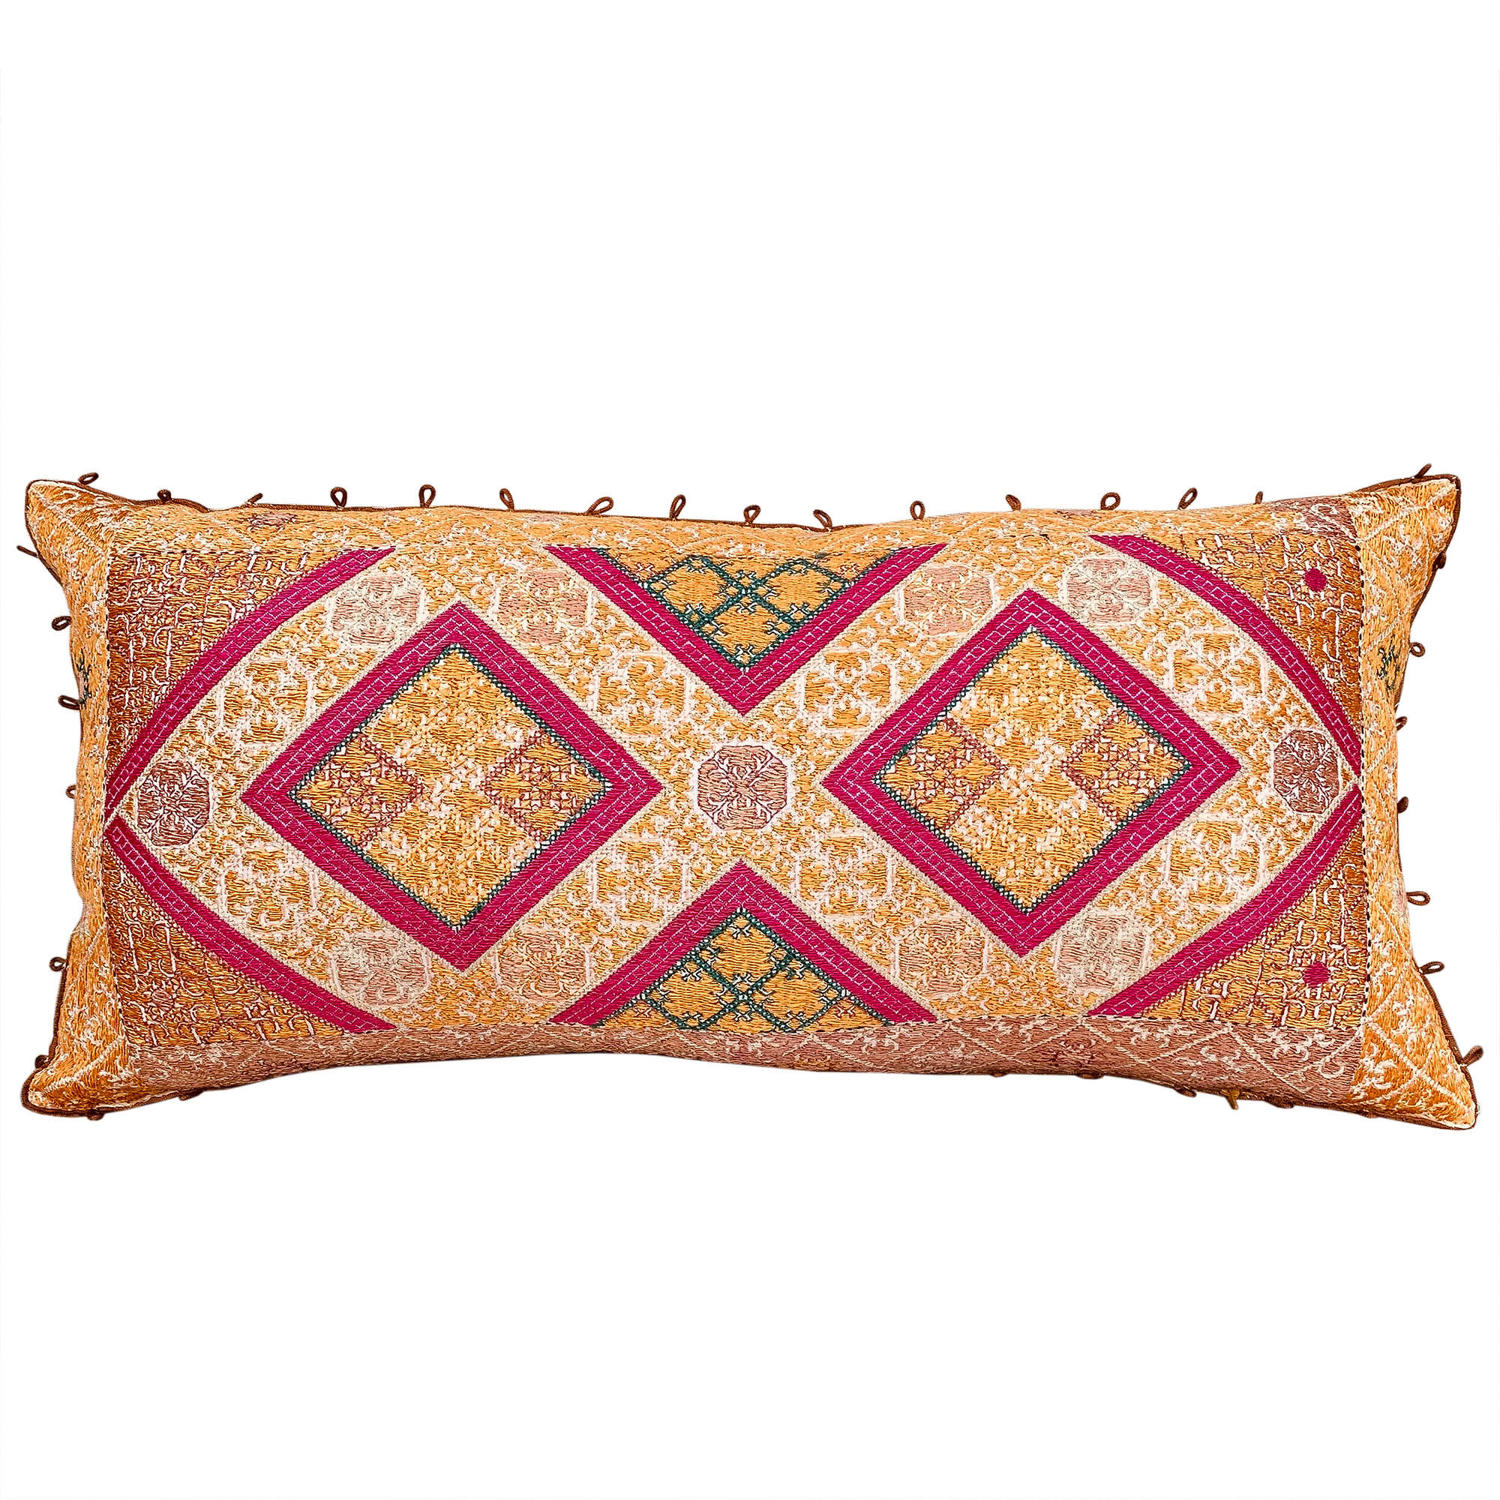 Swati marriage pillow